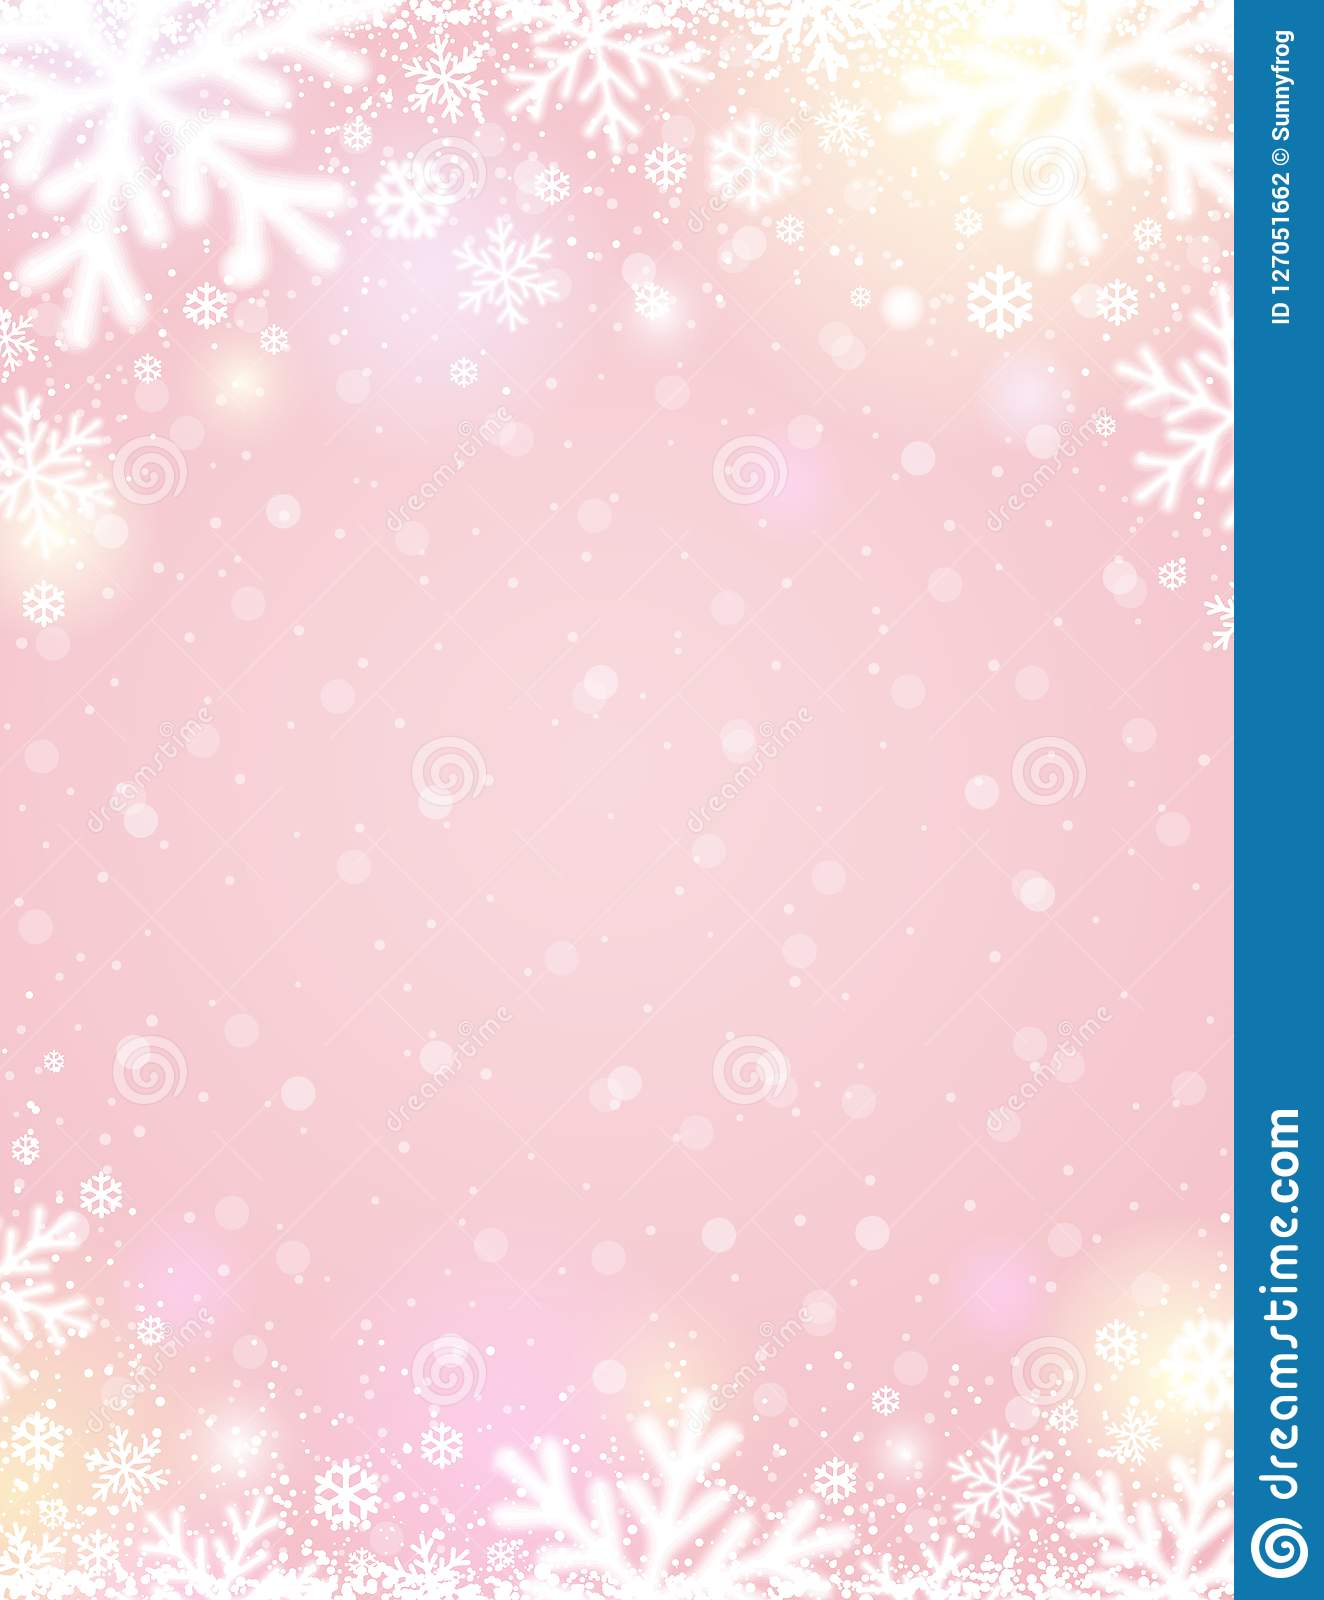 pink christmas background with white blurred snowflakes vector stock vector illustration of year design 127051662 https www dreamstime com pink christmas background white blurred snowflakes vector illustration image127051662